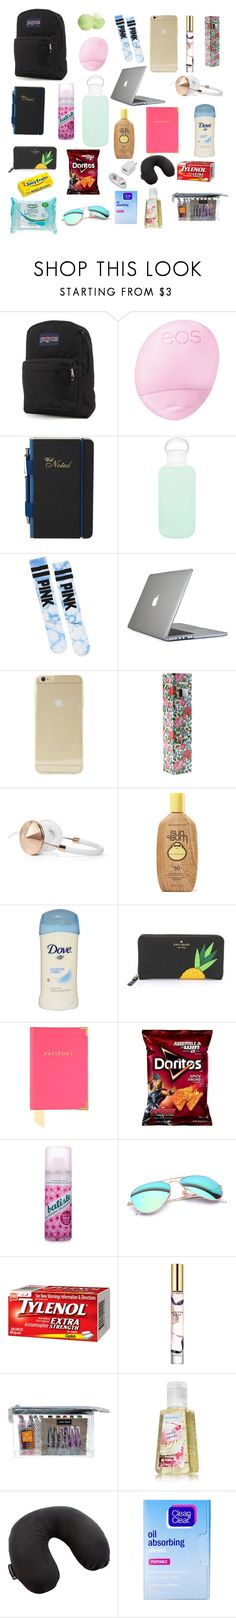 """Travel carry on bag"" by alex-suzanne ❤ liked on Polyvore featuring beauty, JanSport, Eos, Ted Baker, bkr, Victoria's Secret, Speck, Sonix, Audio Technology of NY and Frends"